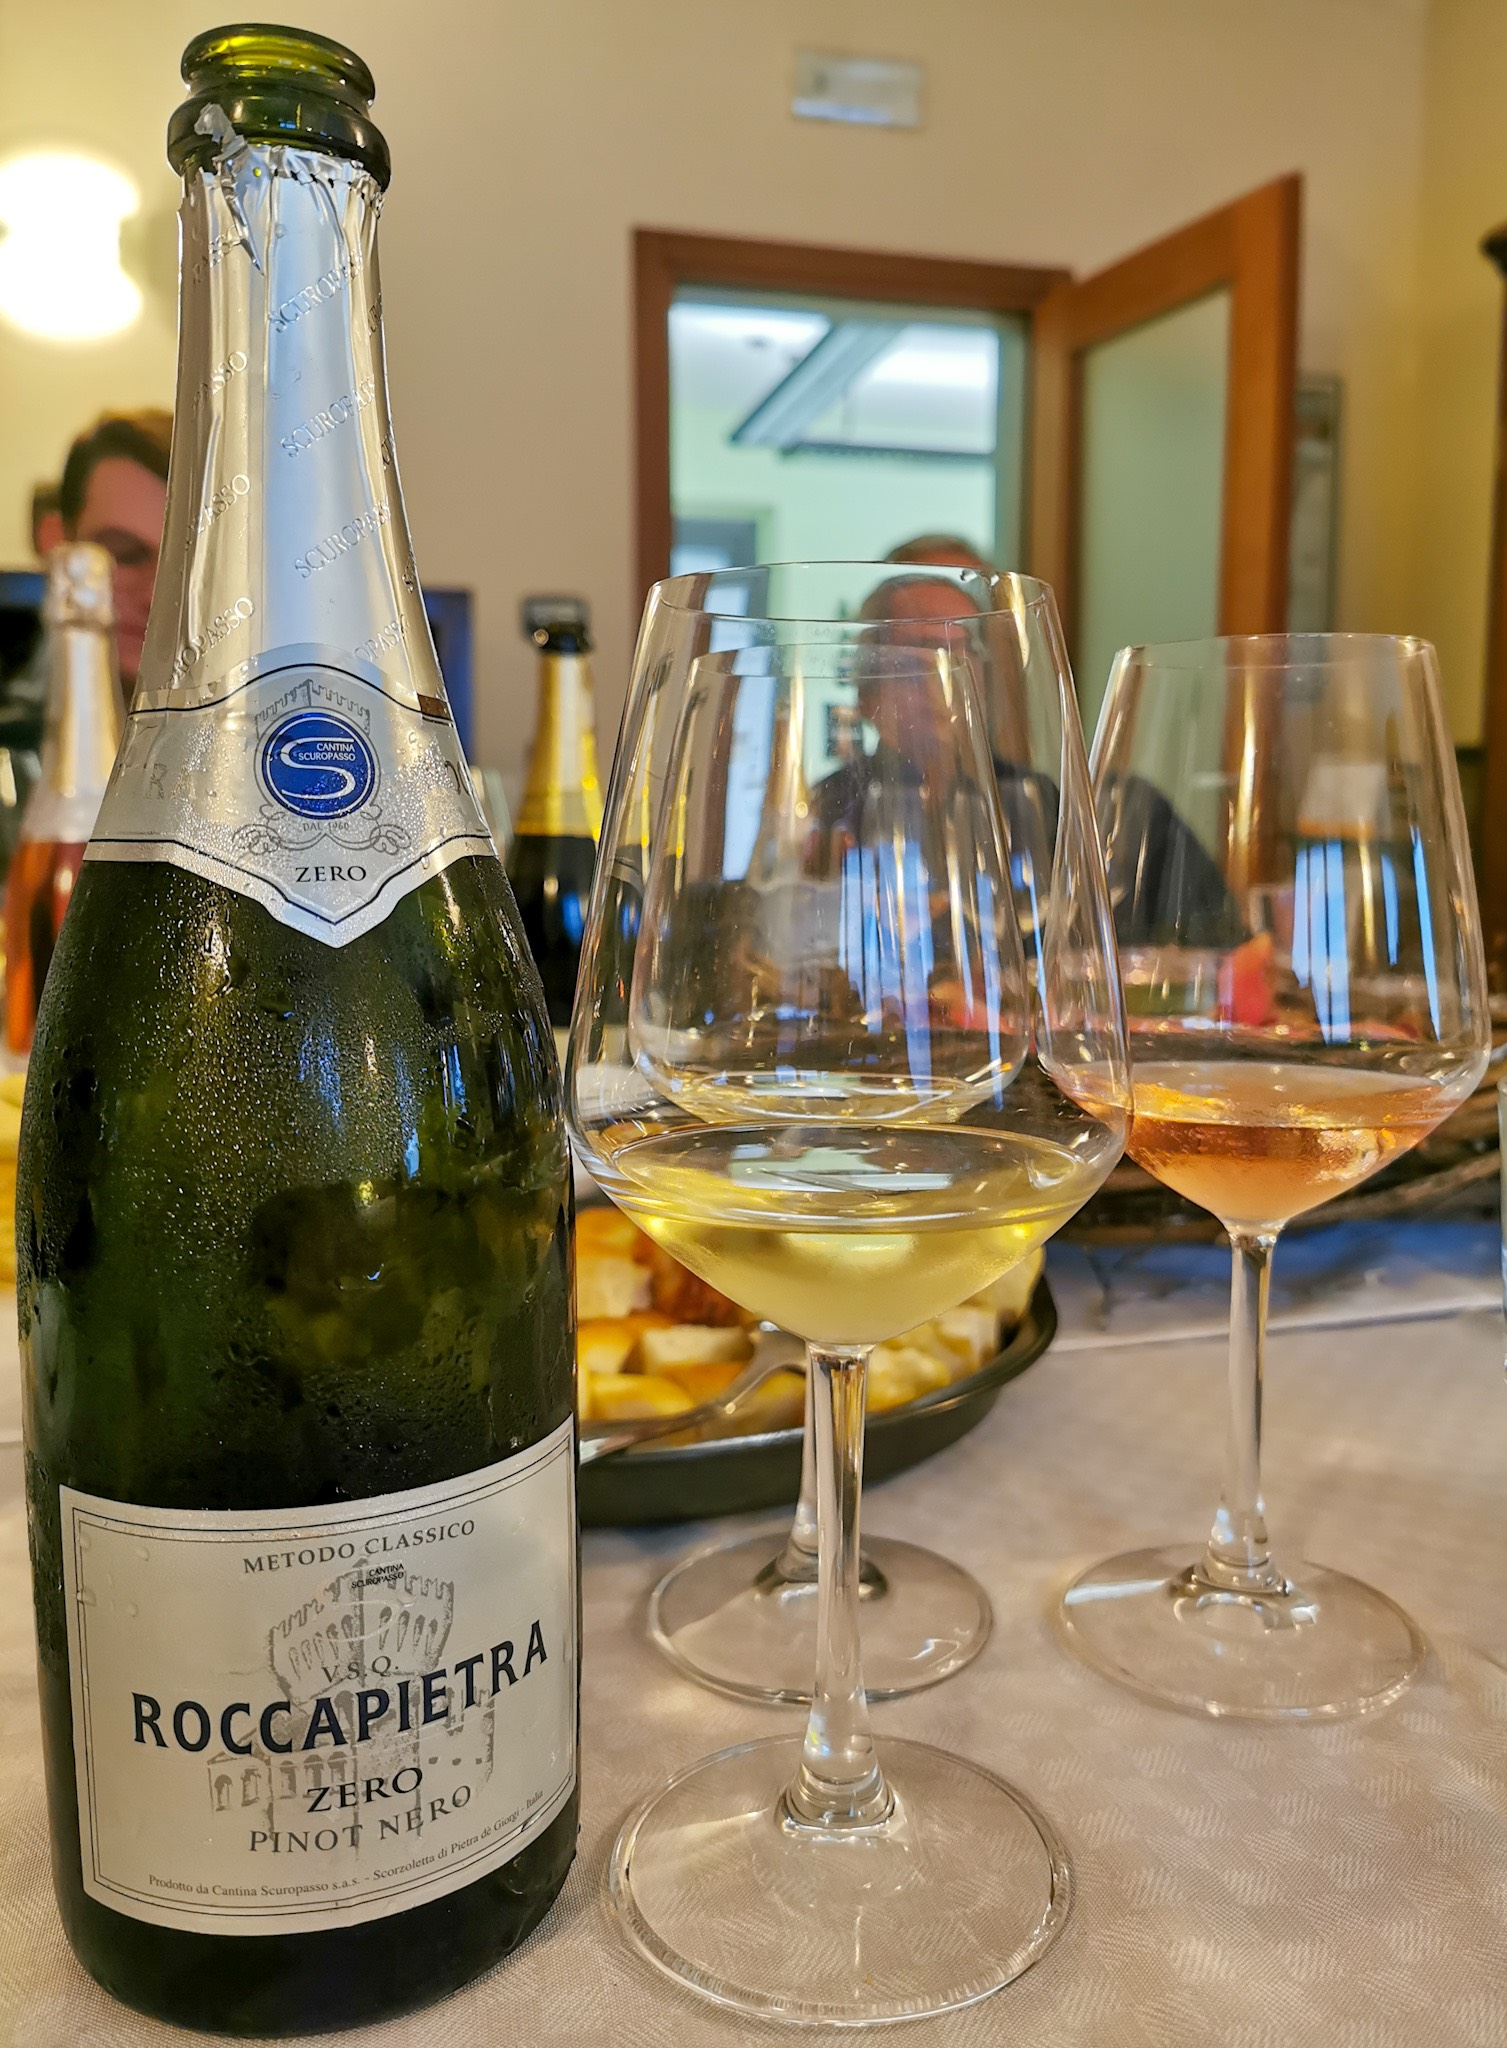 Roccapietra wine from Cantina Scuropasso in Oltrepò Pavese